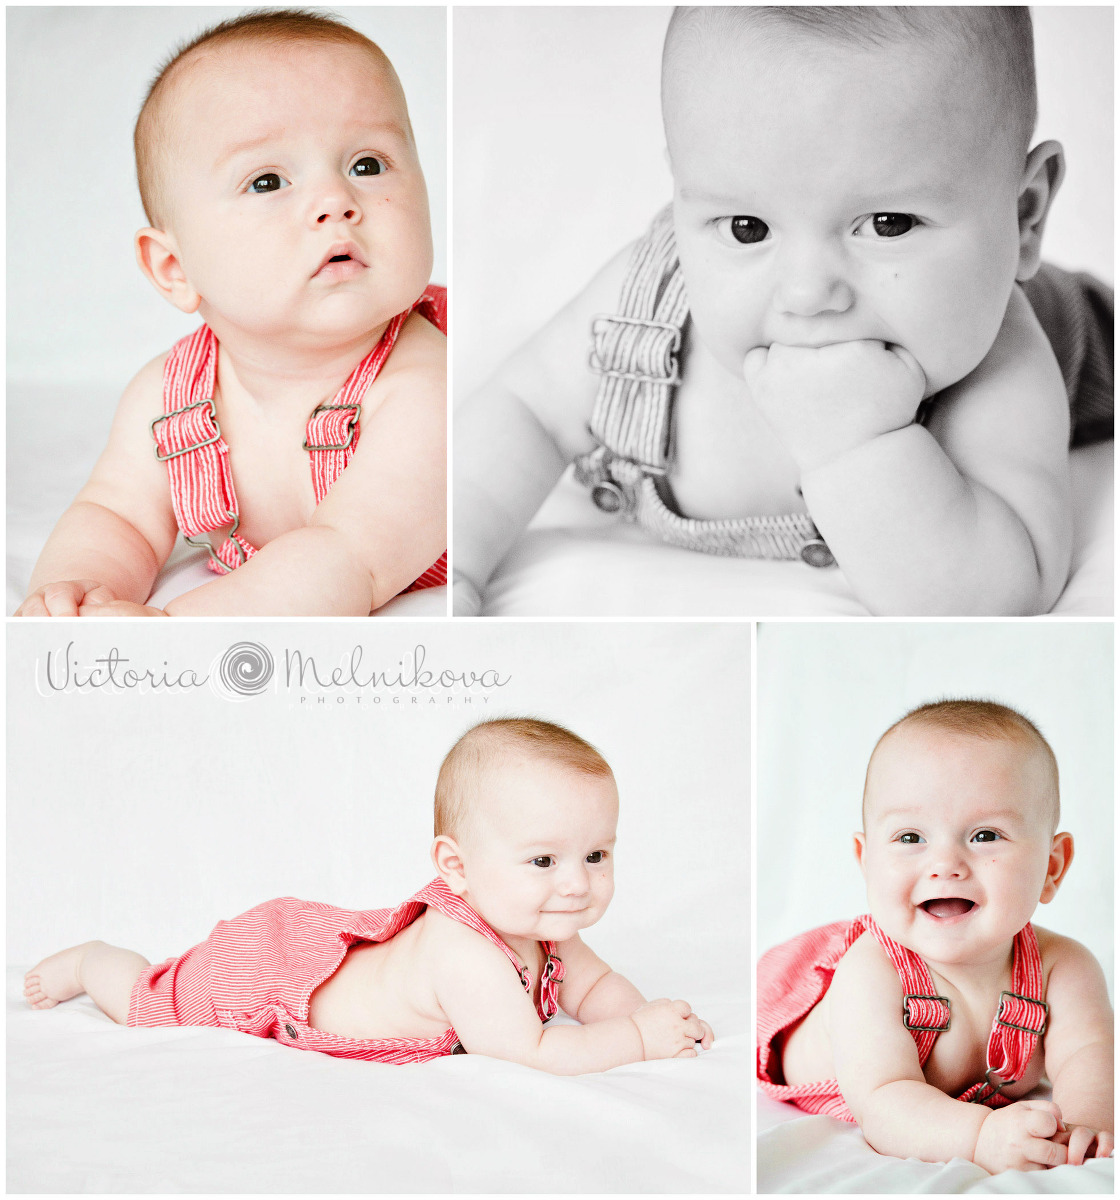 6 months old baby photo ideas